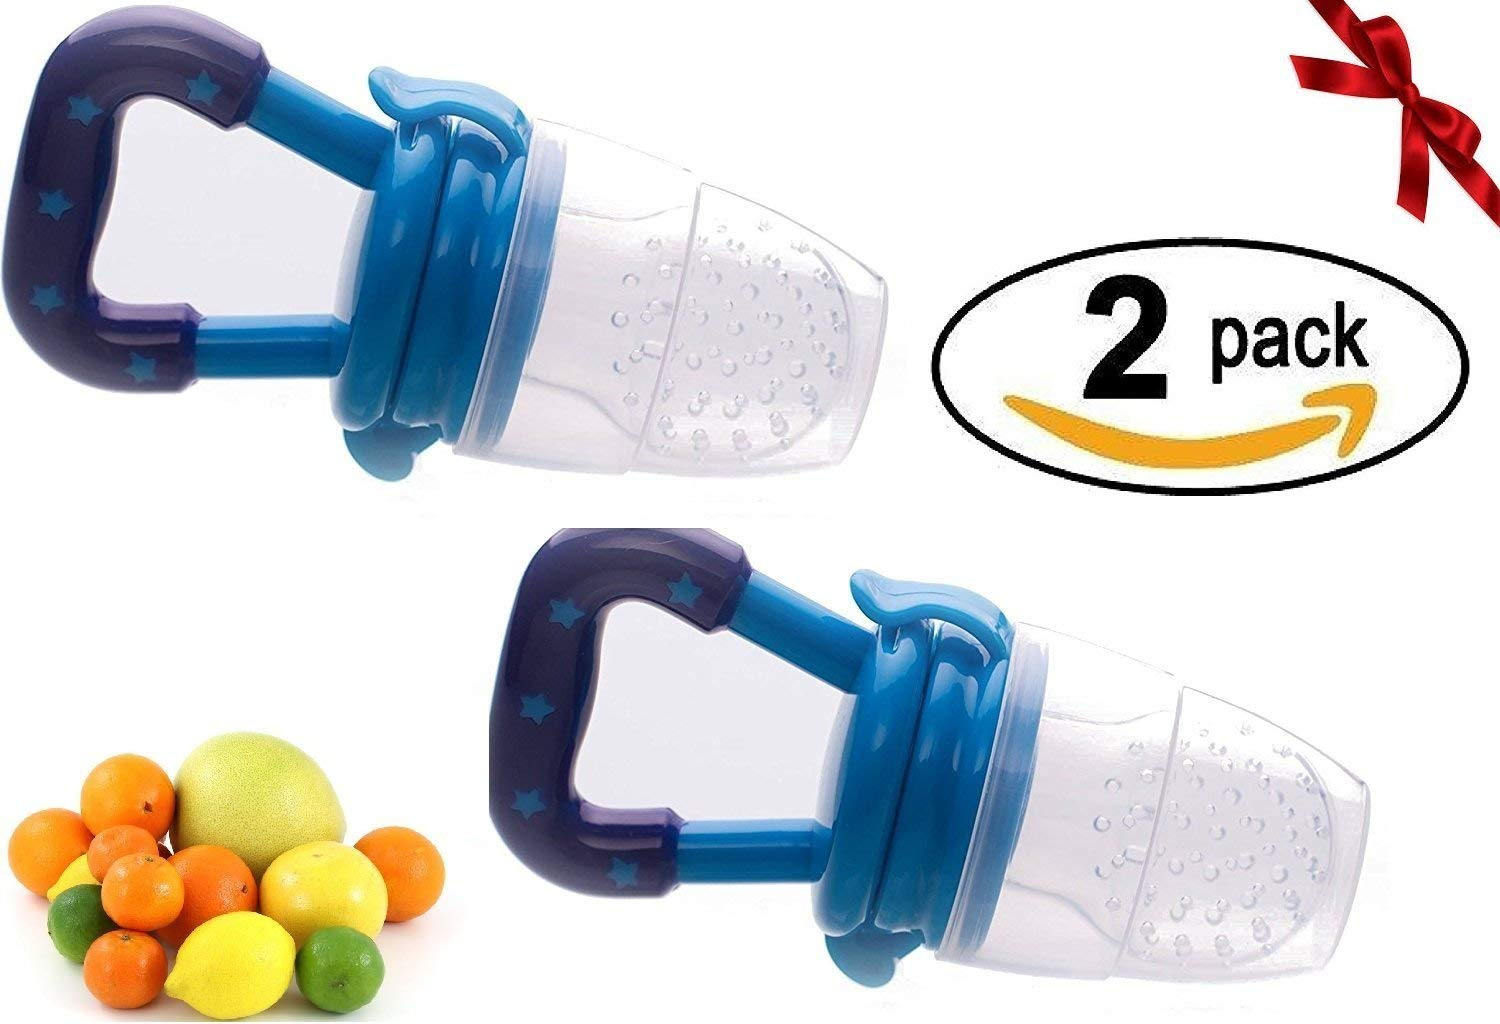 Baby Fresh Food Feeder | Baby Teether | Baby Teething Toys | Baby Fruit Feeder | Mesh Teether, 2 Pack Fruit Food Silicone Nipple Teething Toy Reusable Aching Gums Pacifier,Blue Portable Infant Food